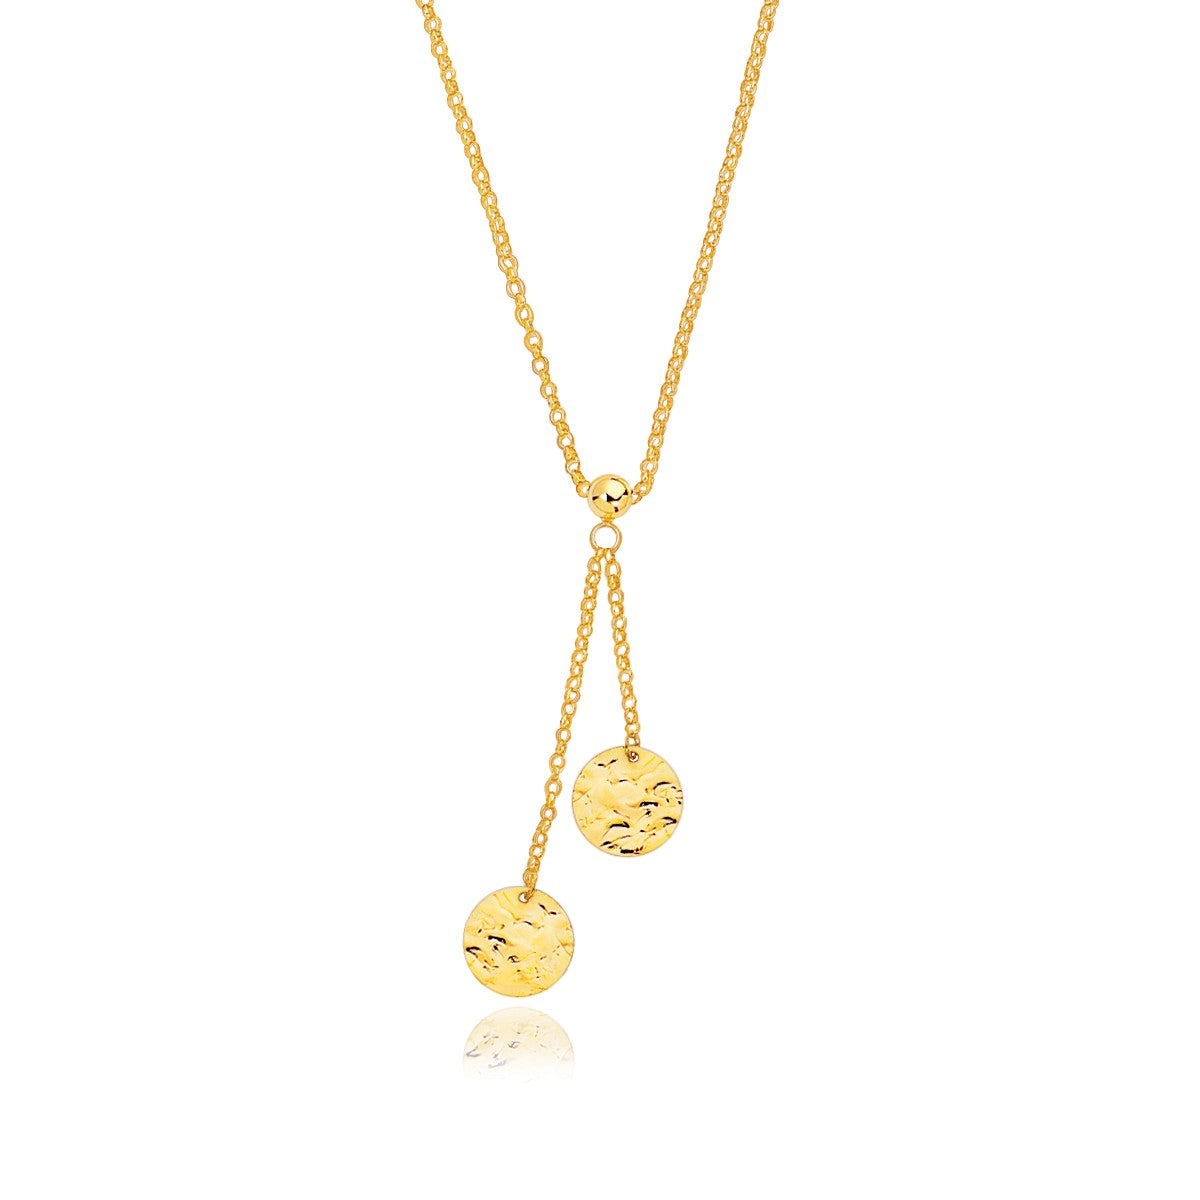 14K Yellow Gold Hammered Disc Lariat 17'' Necklace